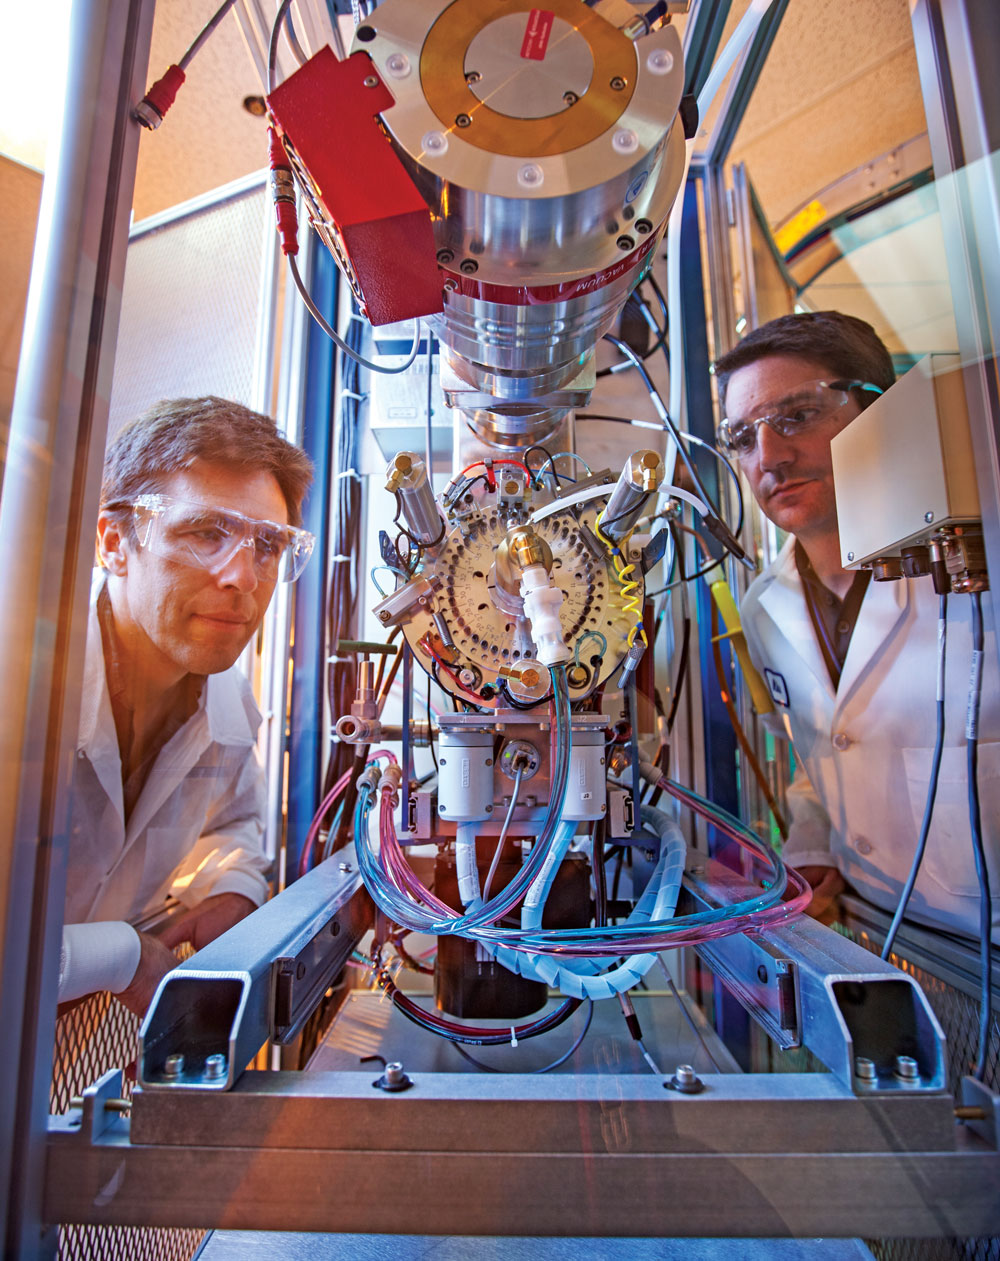 Two scientists peer into an accelerated mass spectrometry unit.